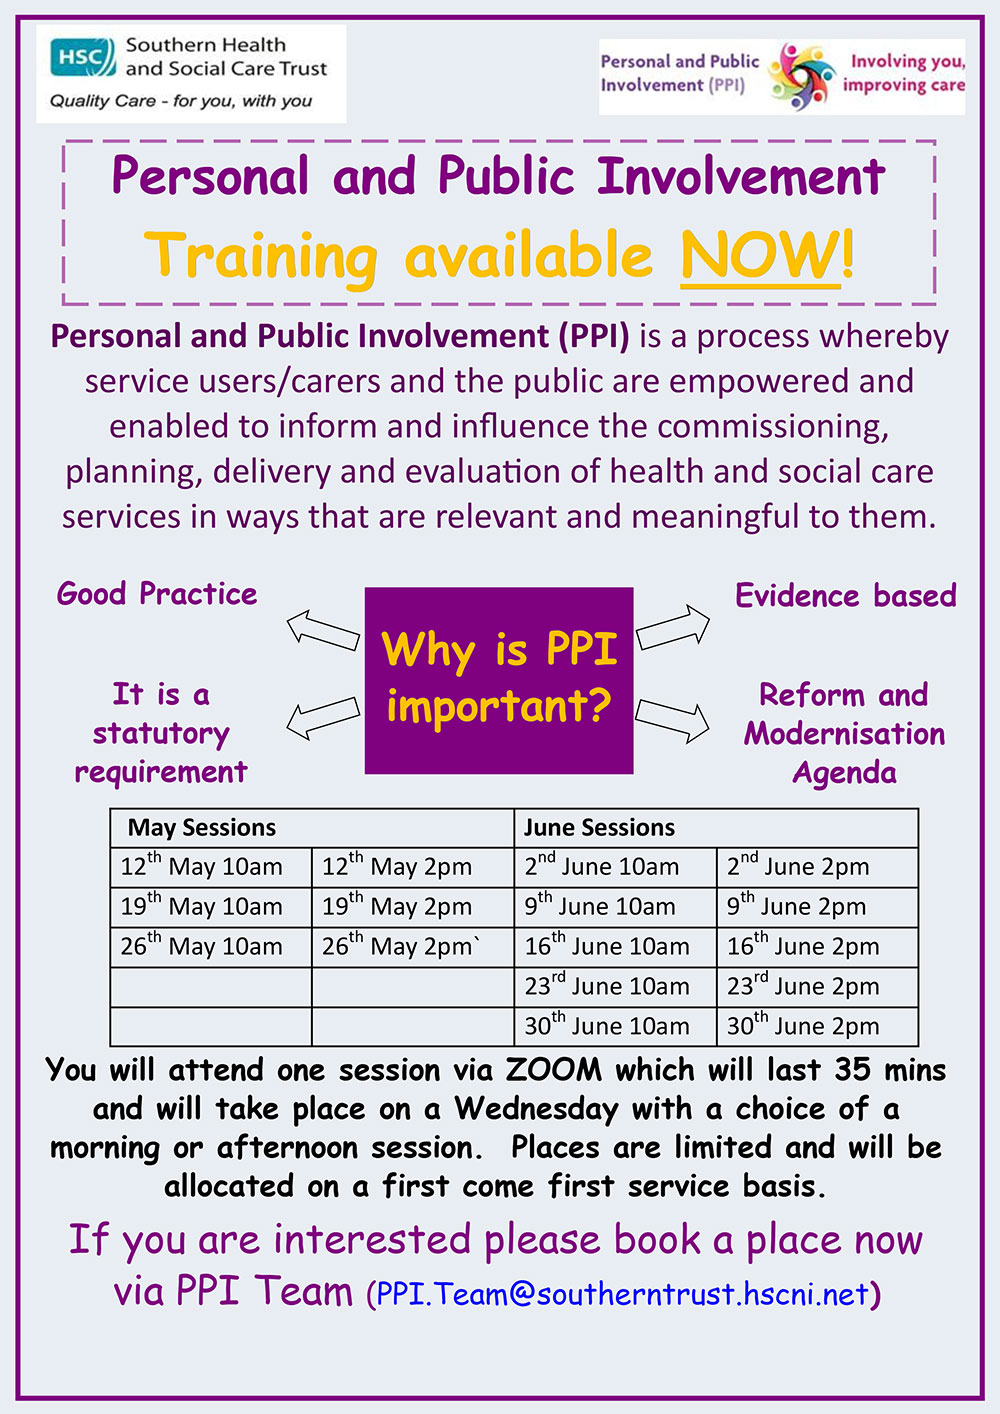 Poster for PPI Training Schedule